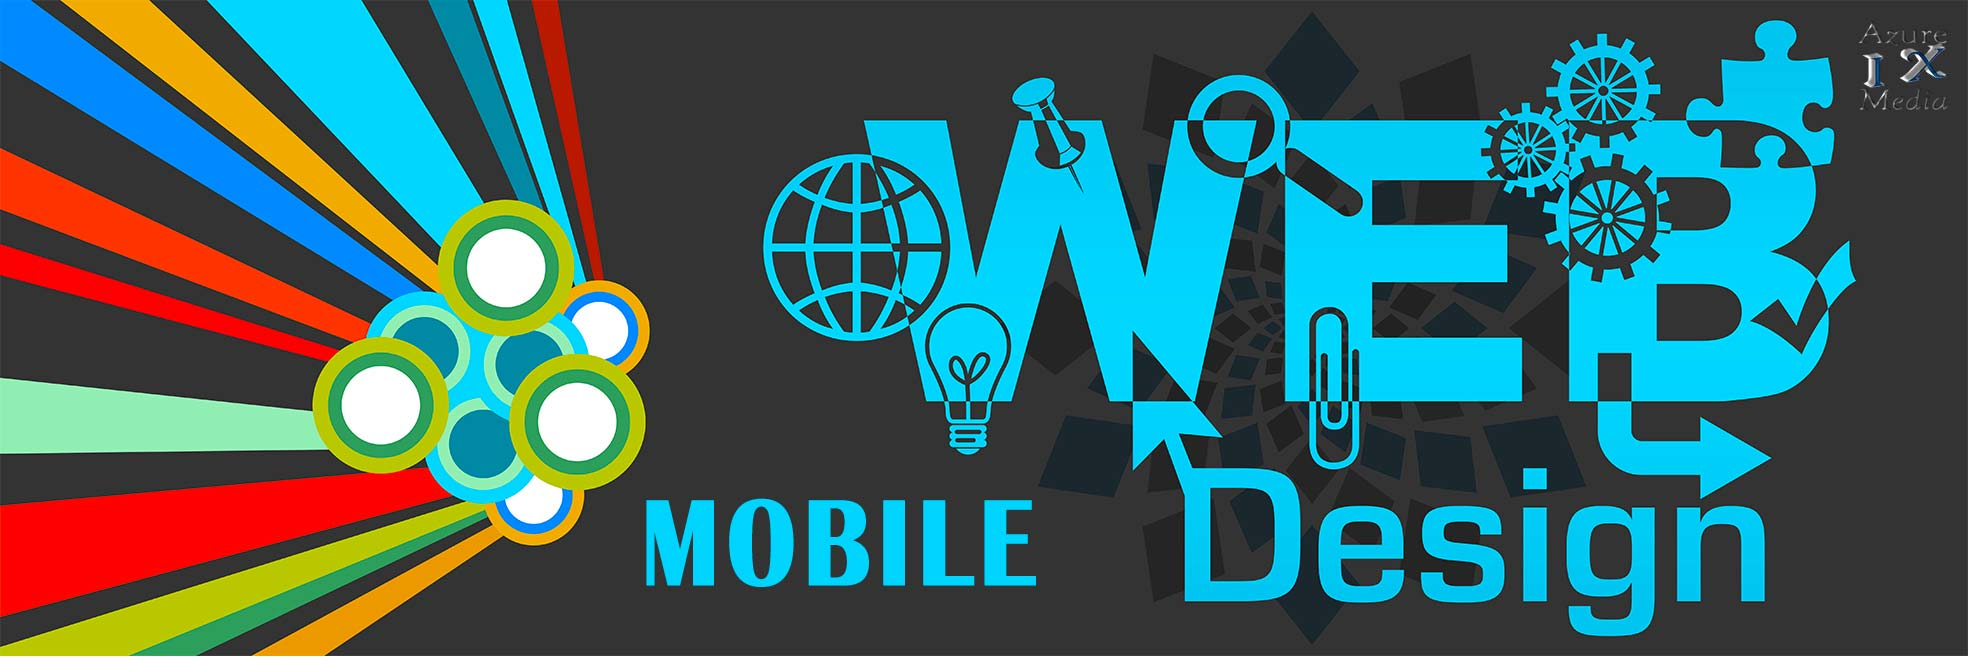 Mobile Website Design Firms Schaumburg